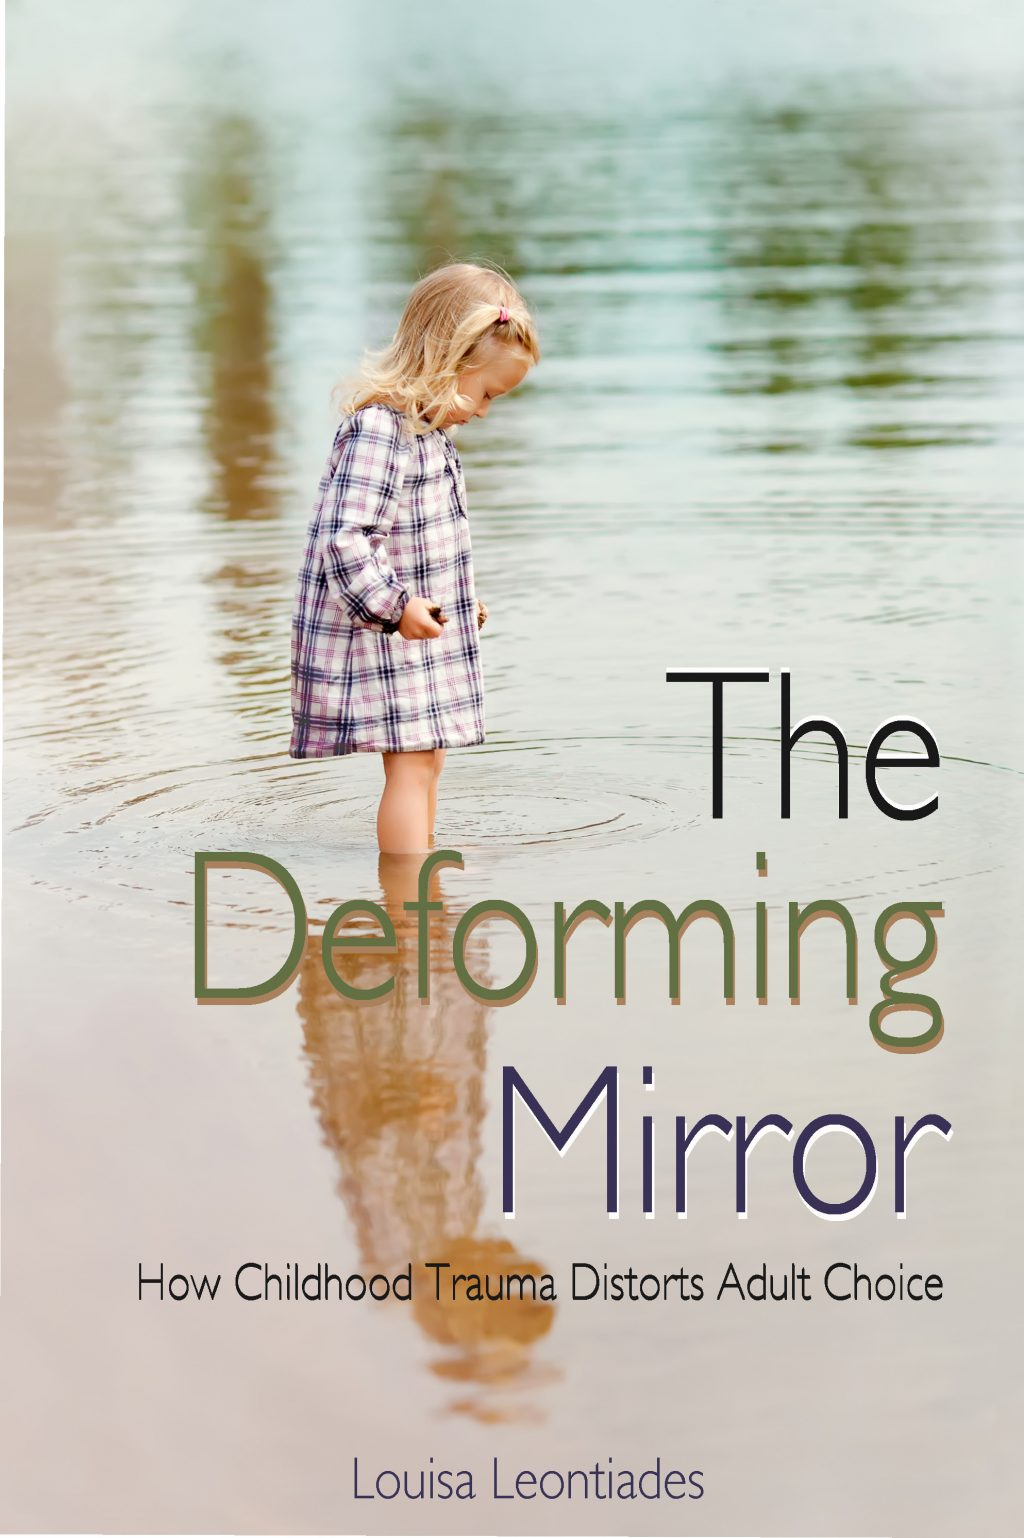 Cover Art for The Deforming Mirror by Louisa Leontiades